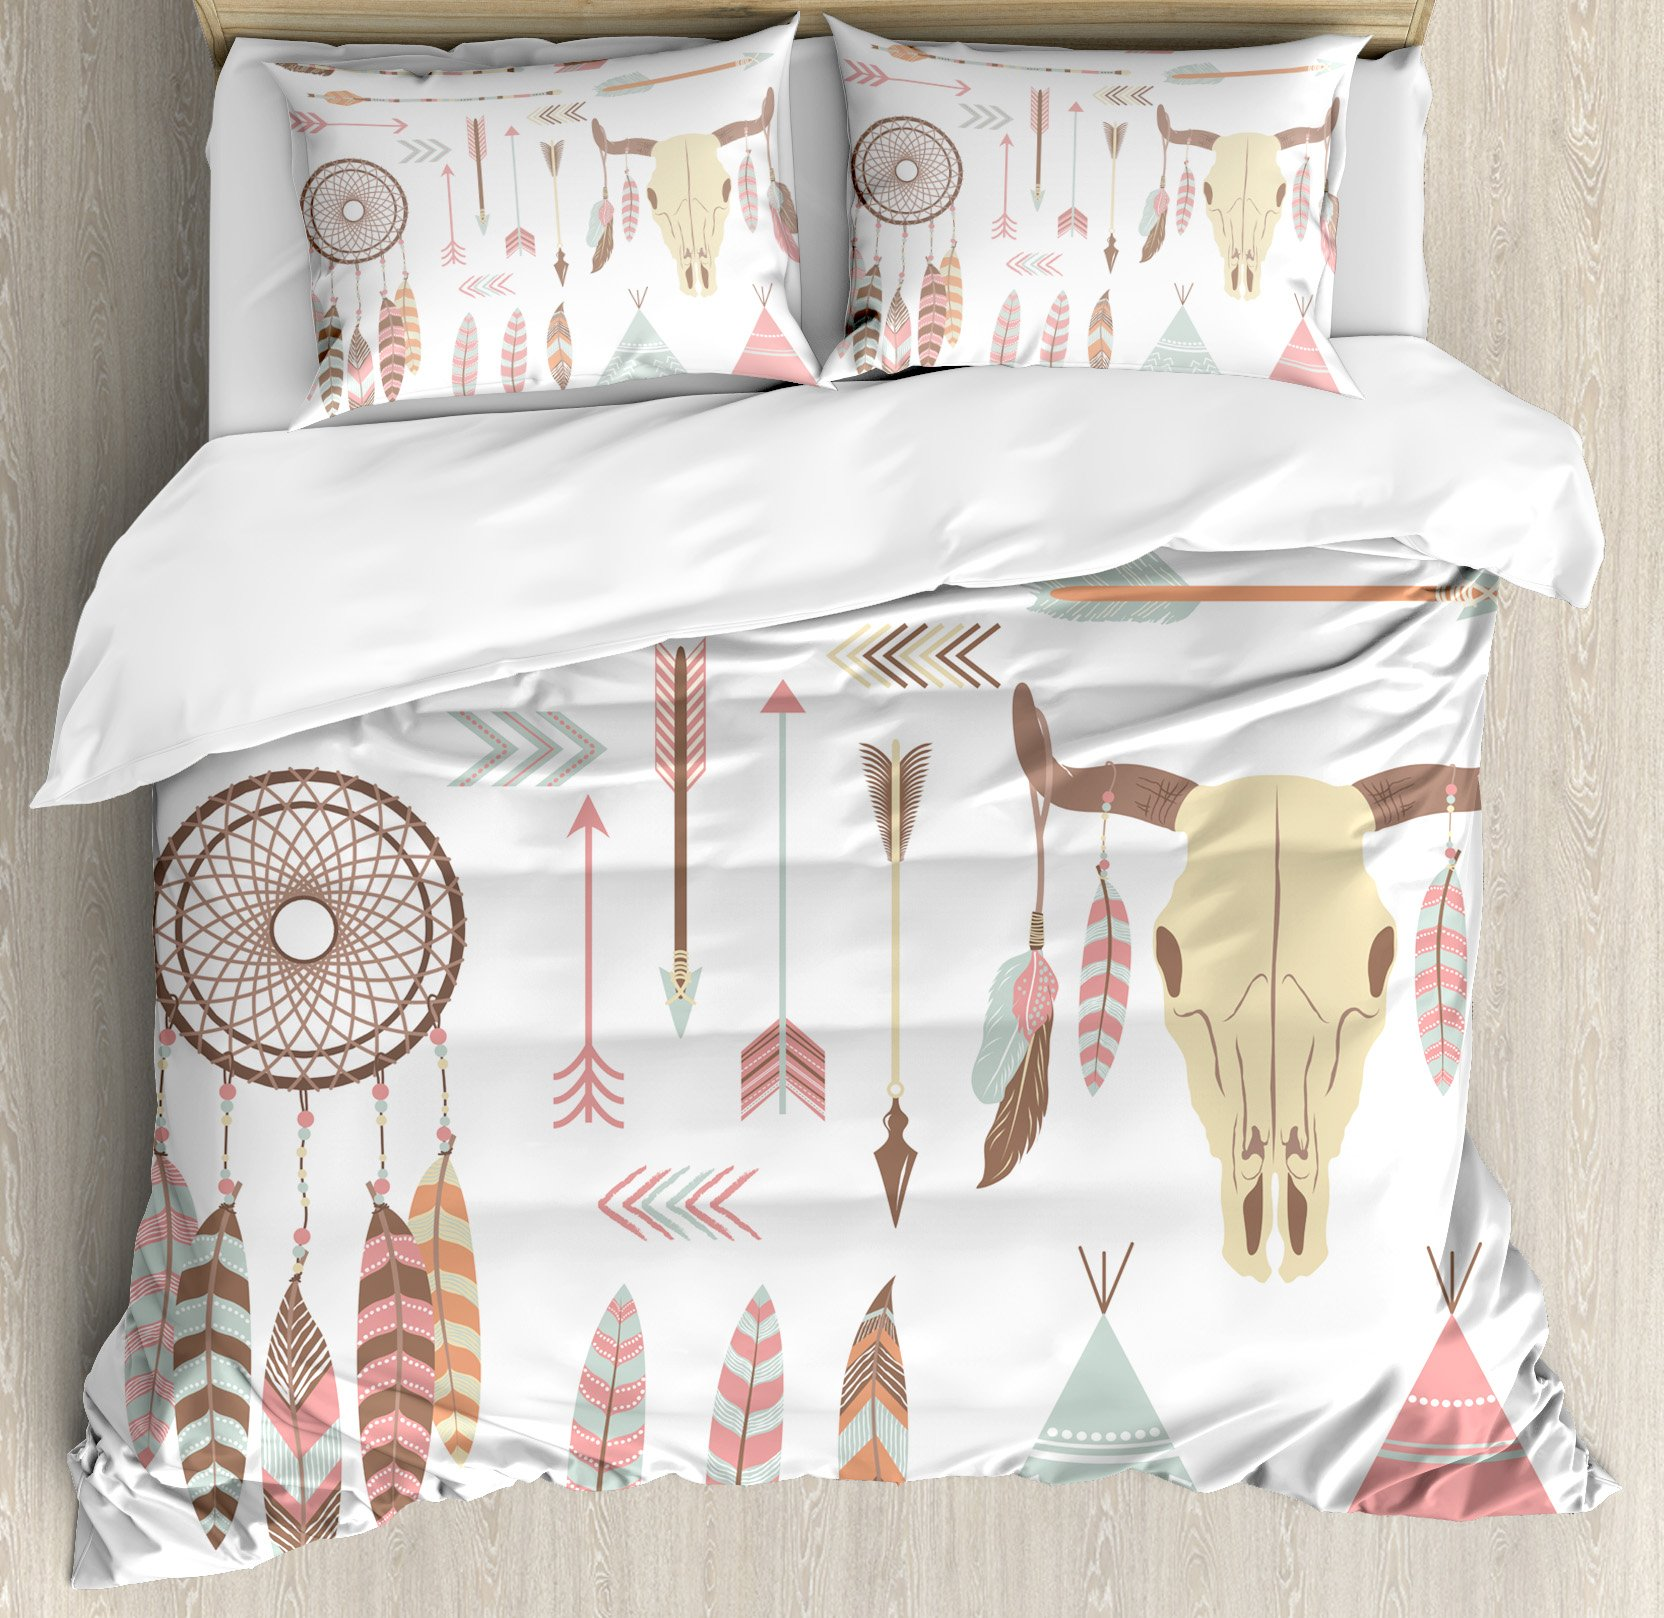 Native American Duvet Cover Set by Ambesonne, Tribal Indian Elements Dreamcatcher Mountain Goat Feather Arrow Ethnic Indie Art, 3 Piece Bedding Set with Pillow Shams, Queen / Full, Multi